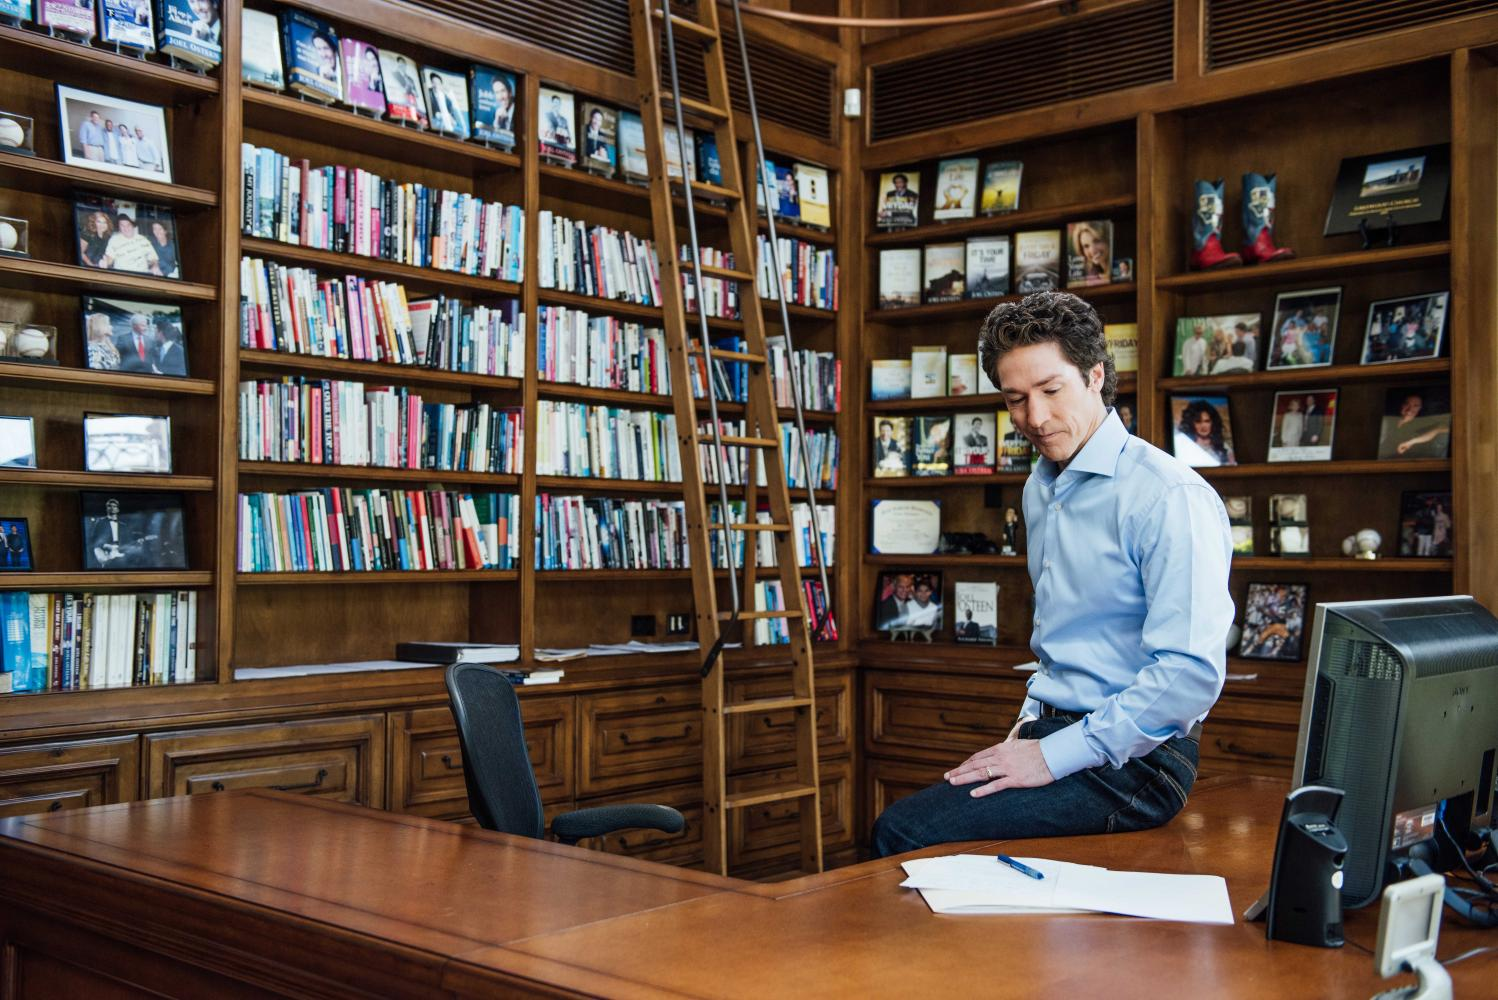 Joel Osteen, famous televangelist pastor waited until last minute before opening his 16,800 seat Lakewood church to victims of Hurricane Harvey